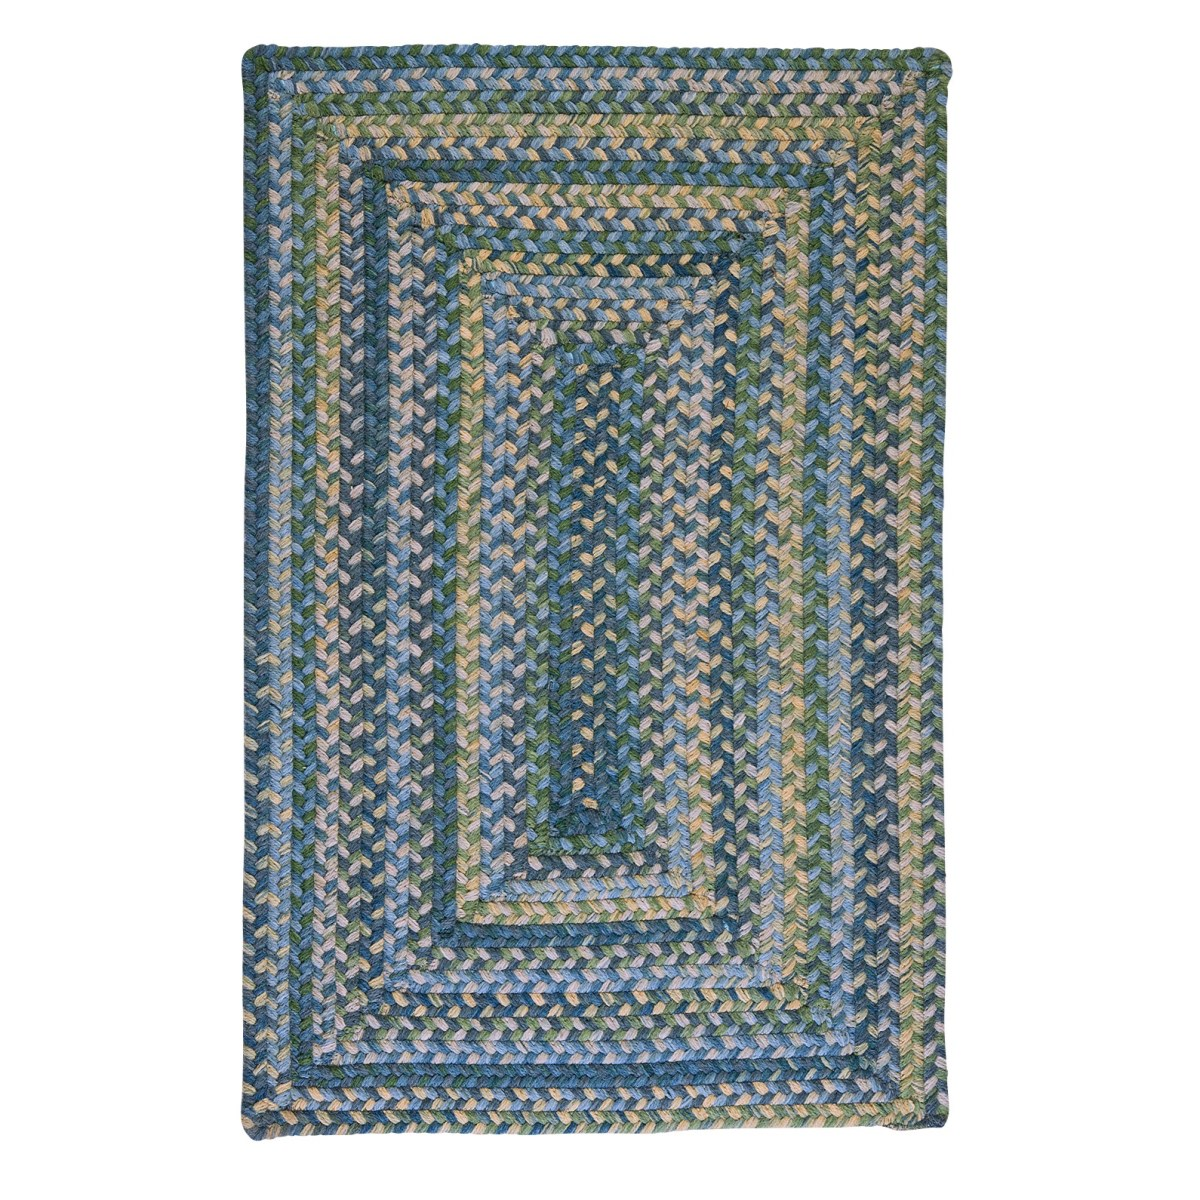 Ridgevale Whipple Blue Wool Braided Rectangular Rugs